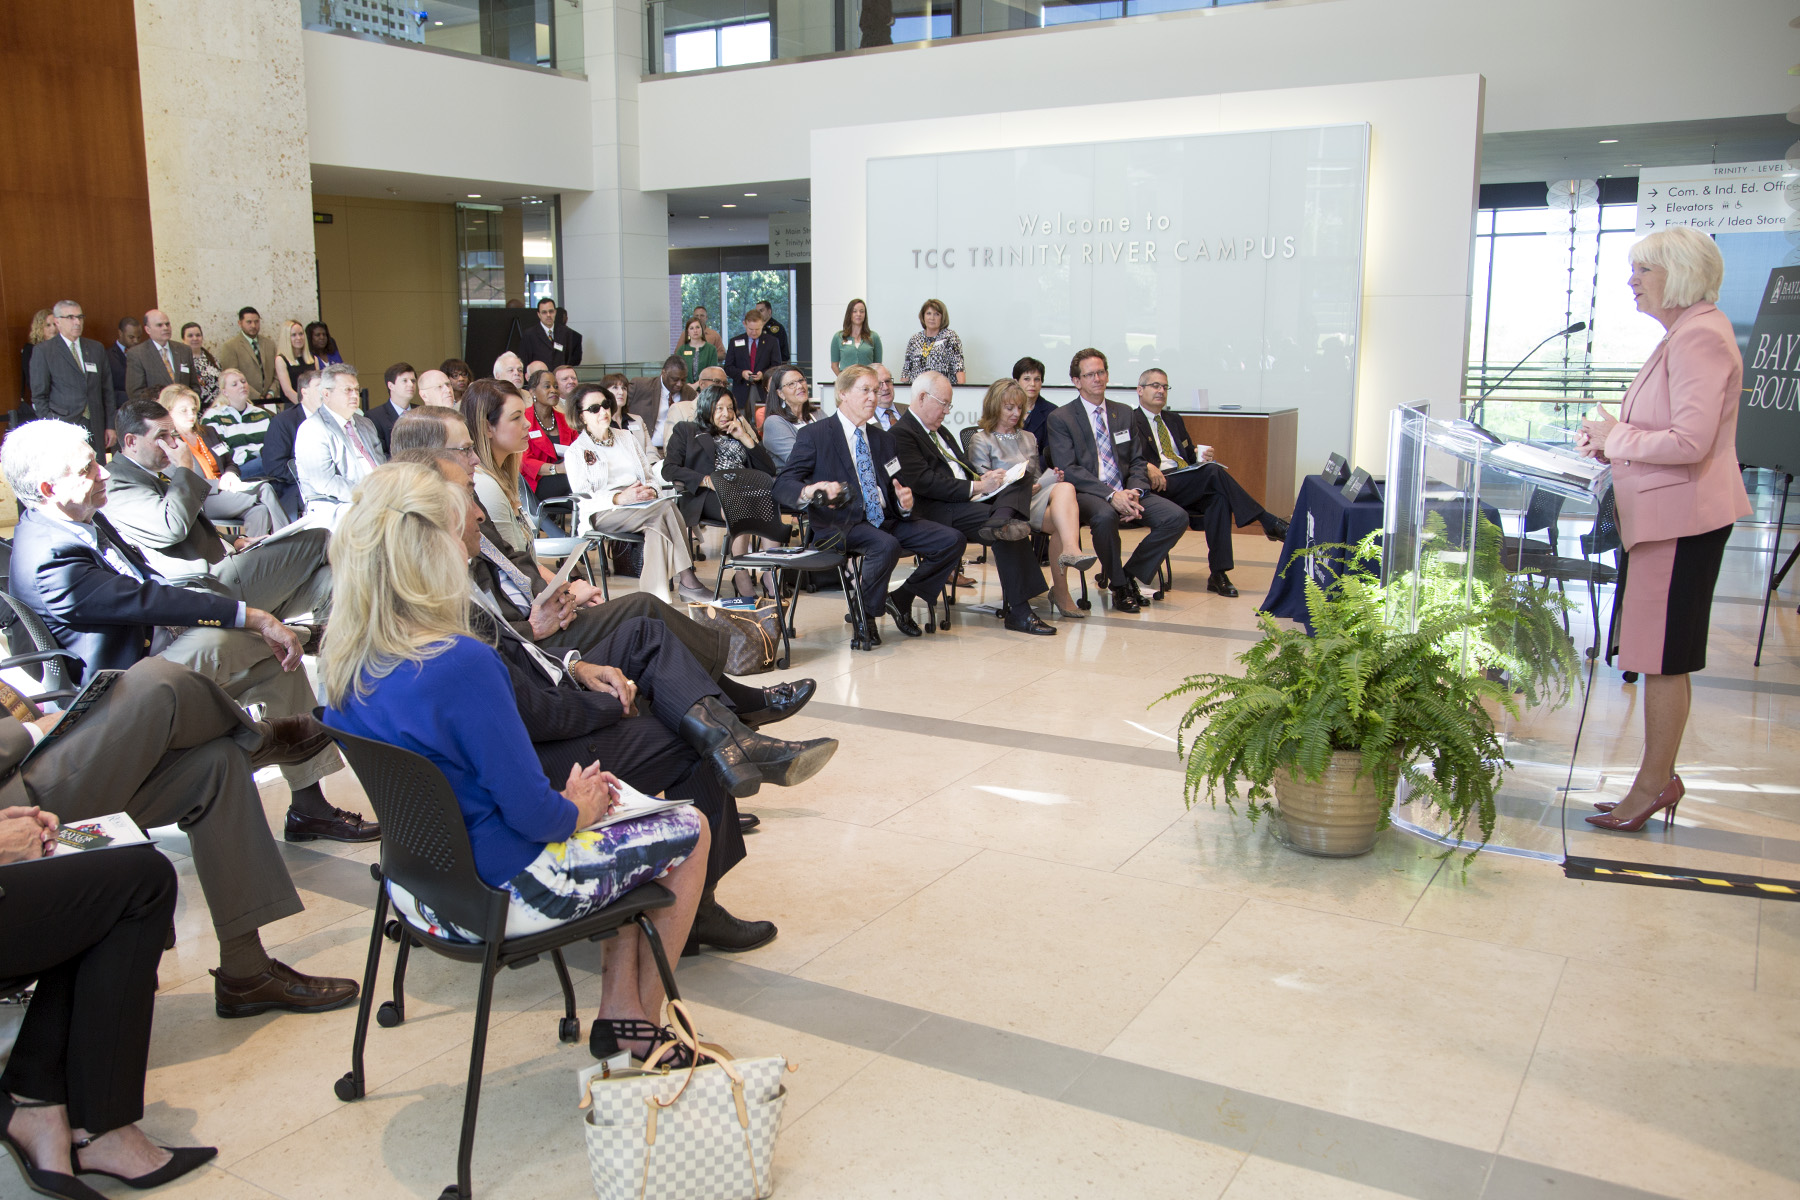 Baylor University and Tarrant County College Announce ... on florida gateway college campus map, trinity river campus tarrant county, tccd south campus map,